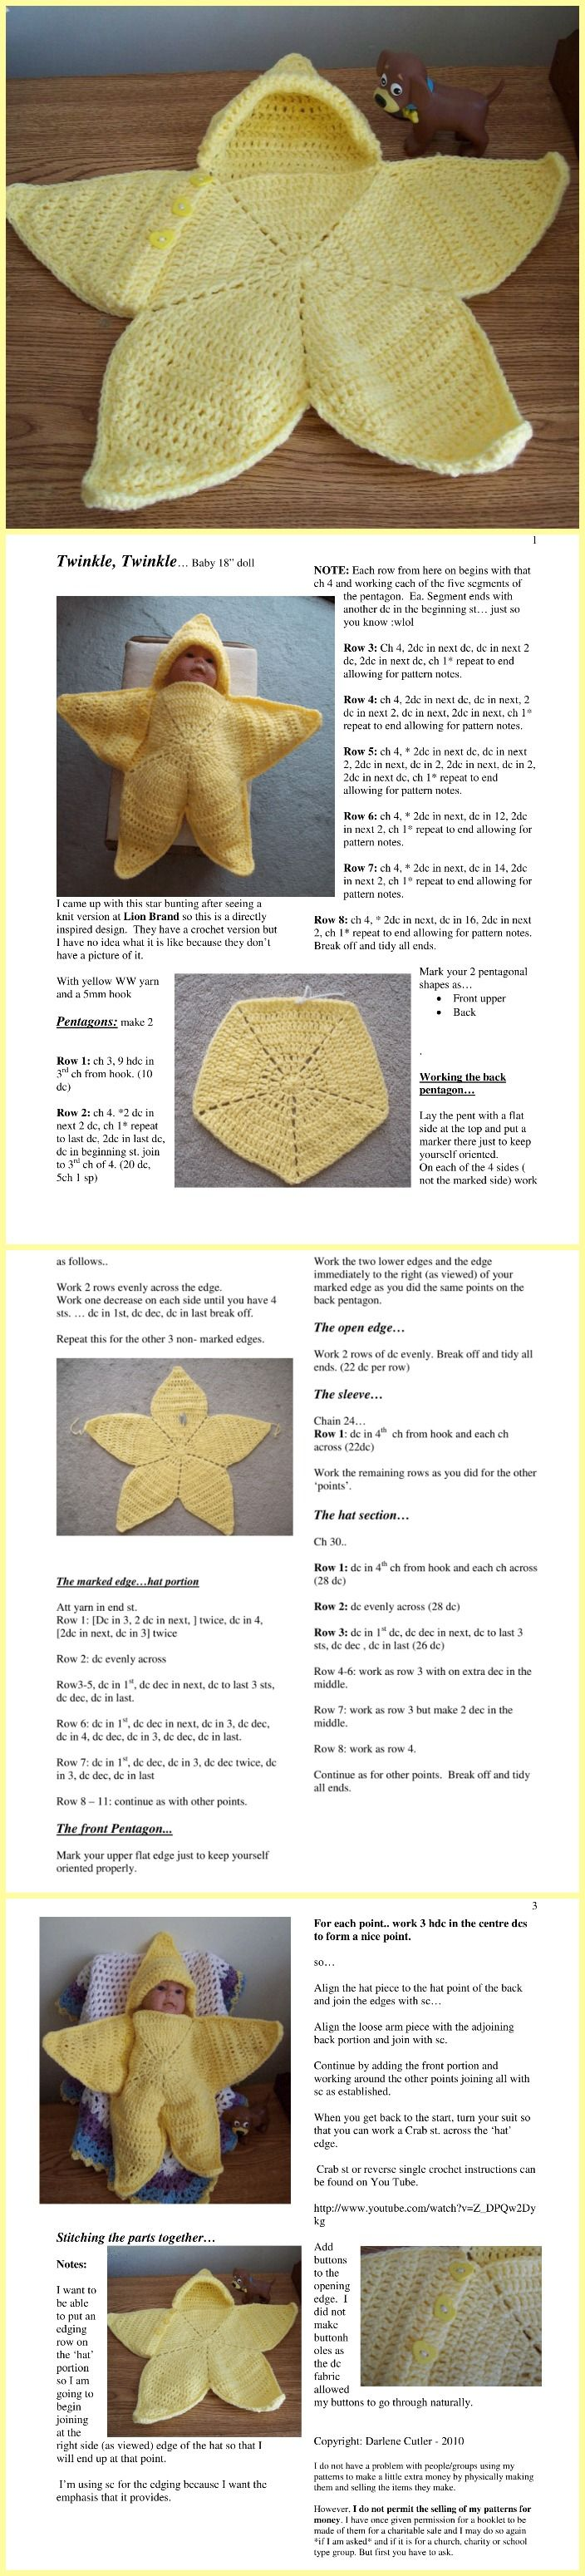 Free Patterns & Tutorials #crochetbabycocoon